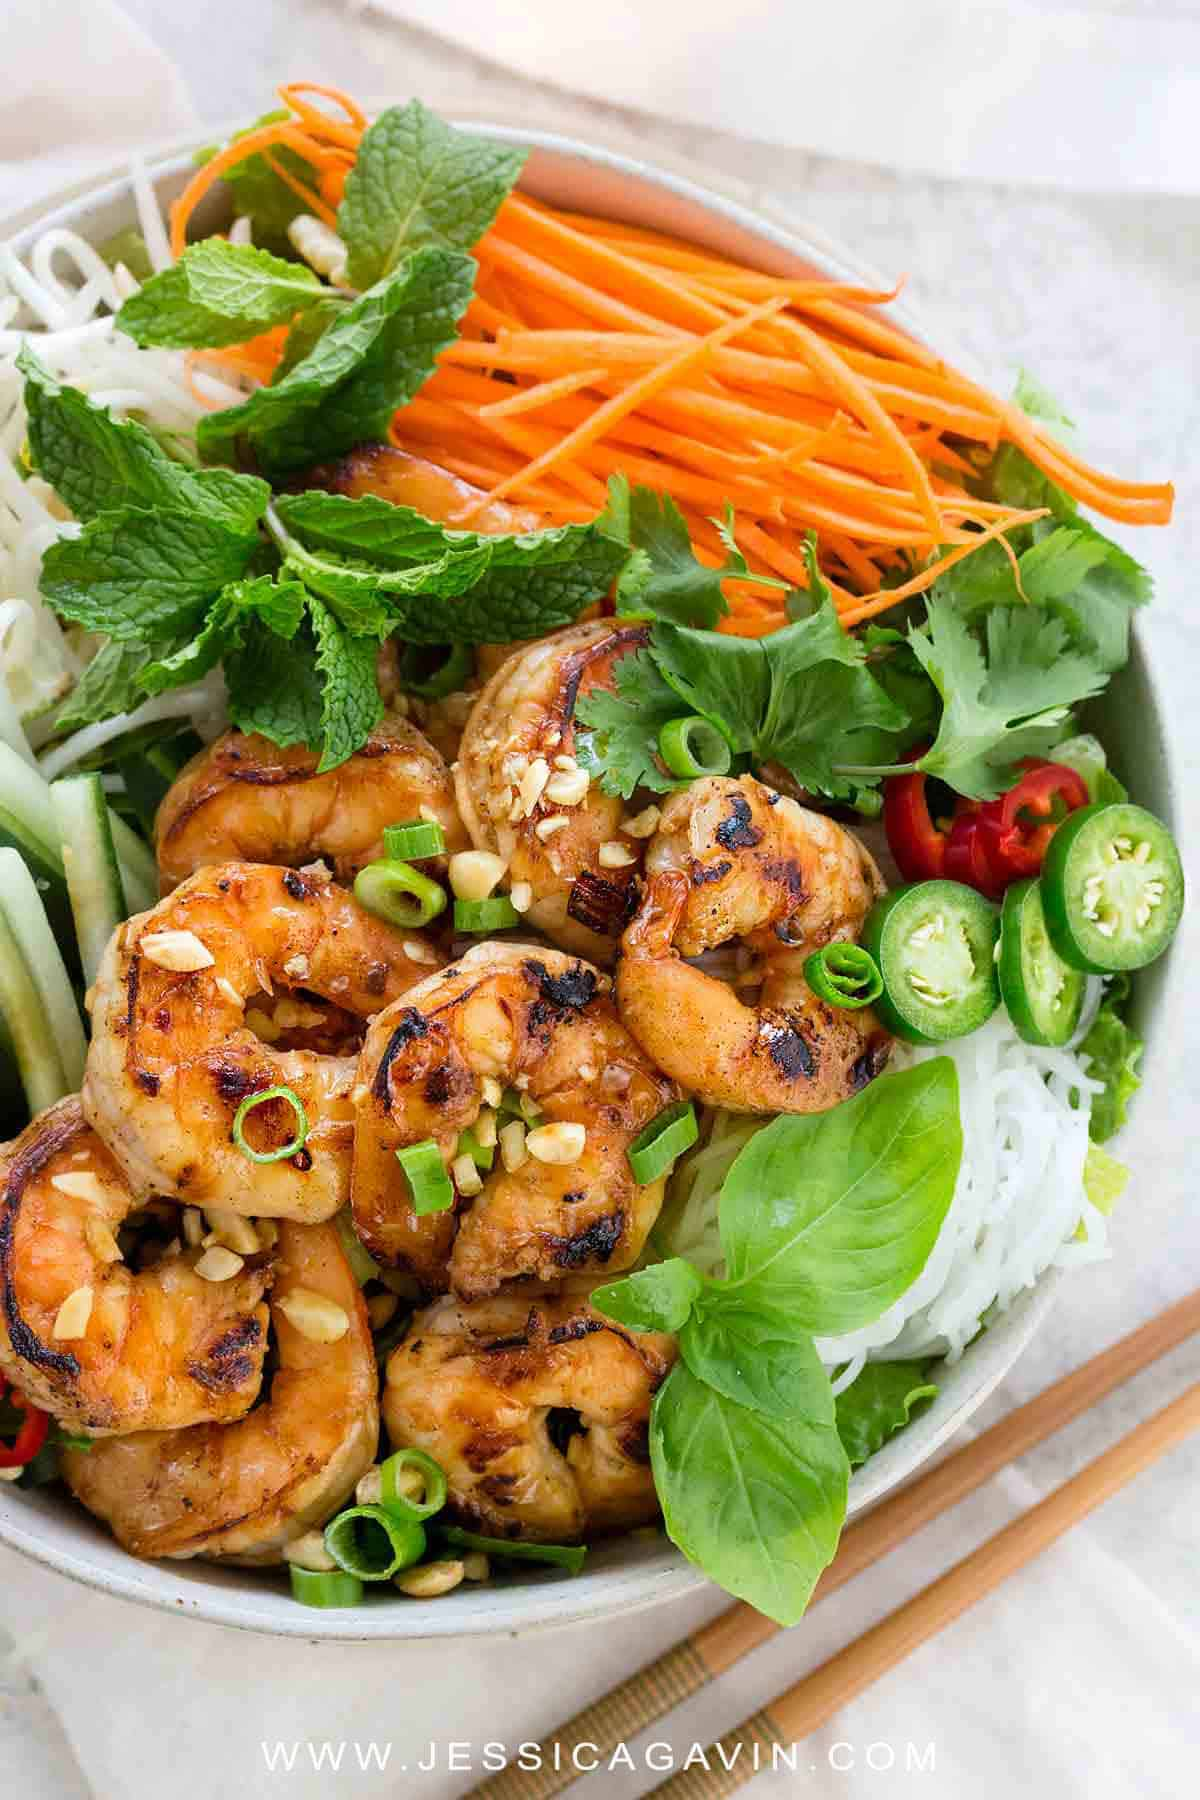 Vietnamese shrimp salad is a light meal packed with bold flavors and serious crunch. A traditional rice noodle salad loaded with seared shrimp, crisp vegetables, and an irresistible nuoc cham sauce. #shrimpsalad #vietnamese #glutenfree